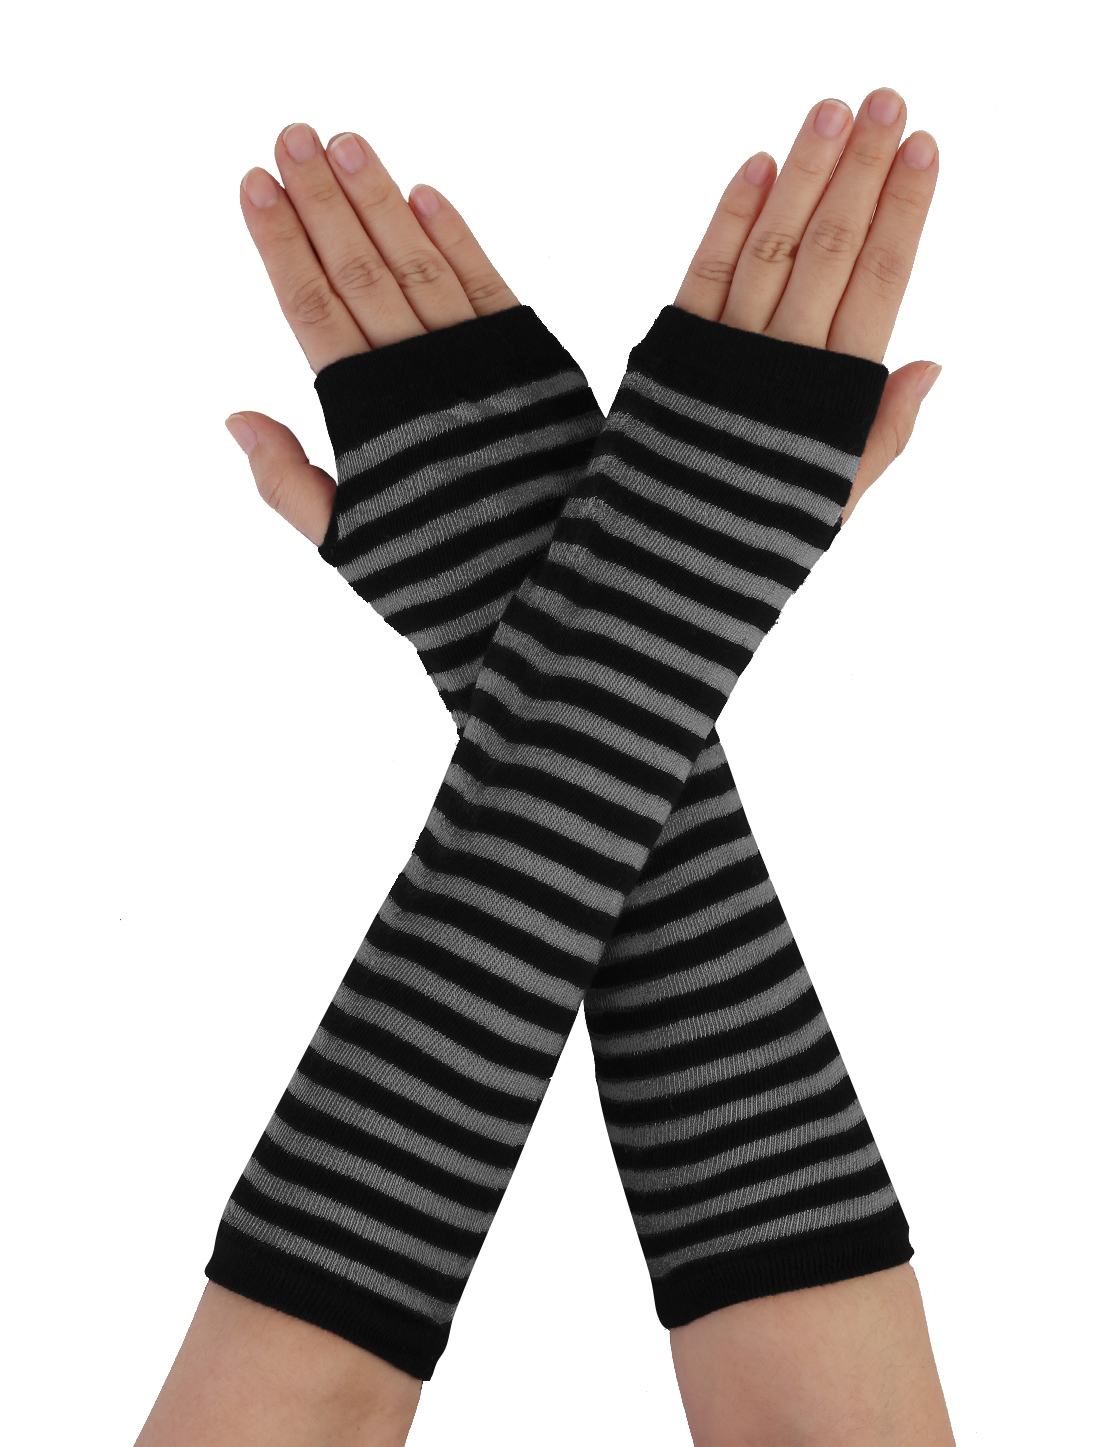 Thumbless Fingerless Knitted Arm Long Striped Gloves Warmers Black Gray Pair